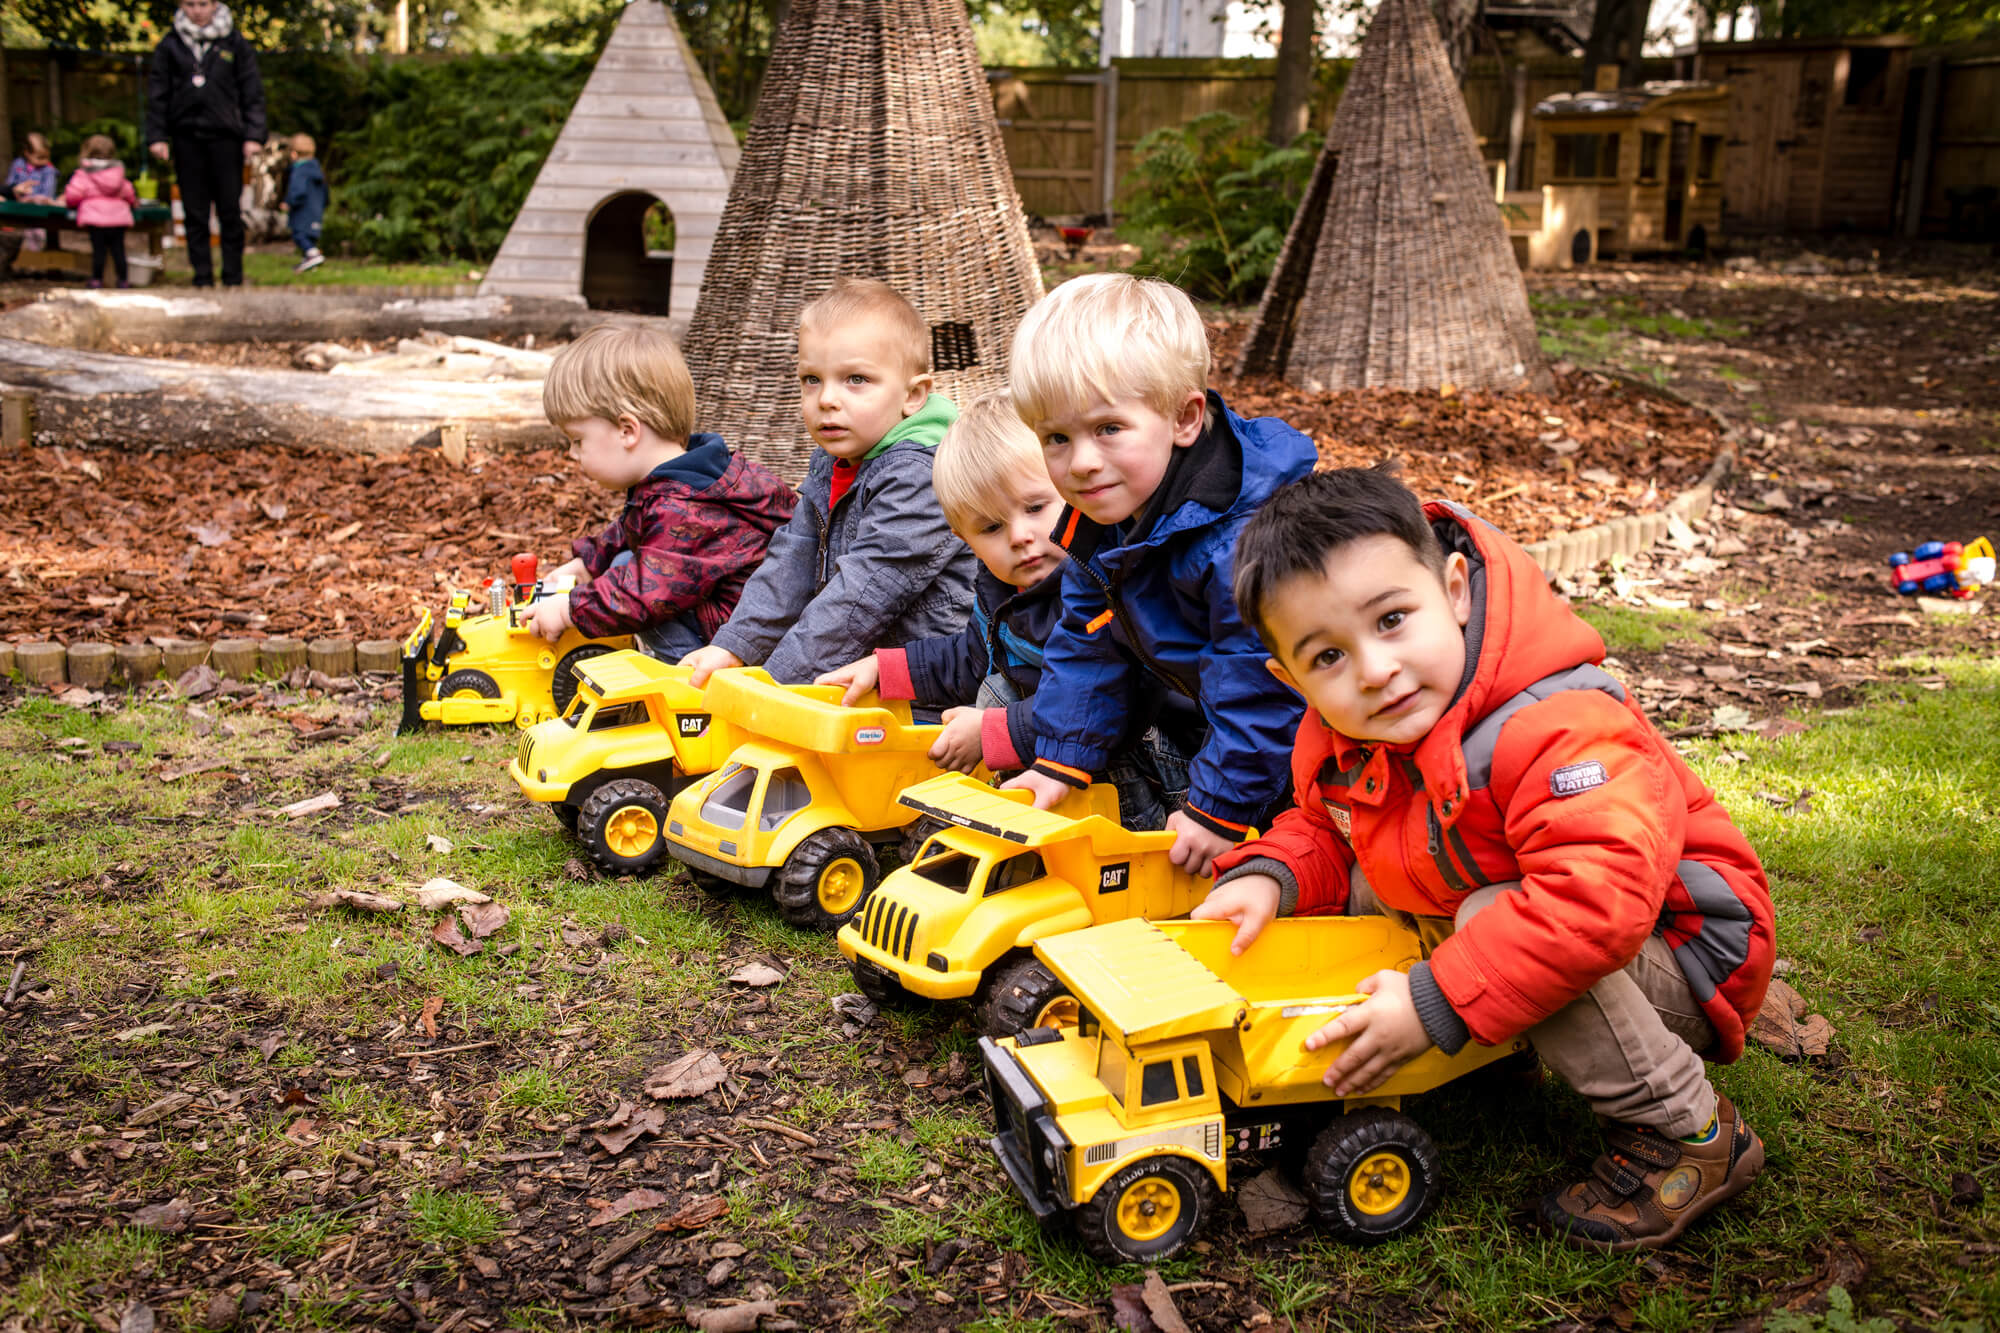 A group of young children in outdoor clothes line up in a forest school environment to have a race with digger toys